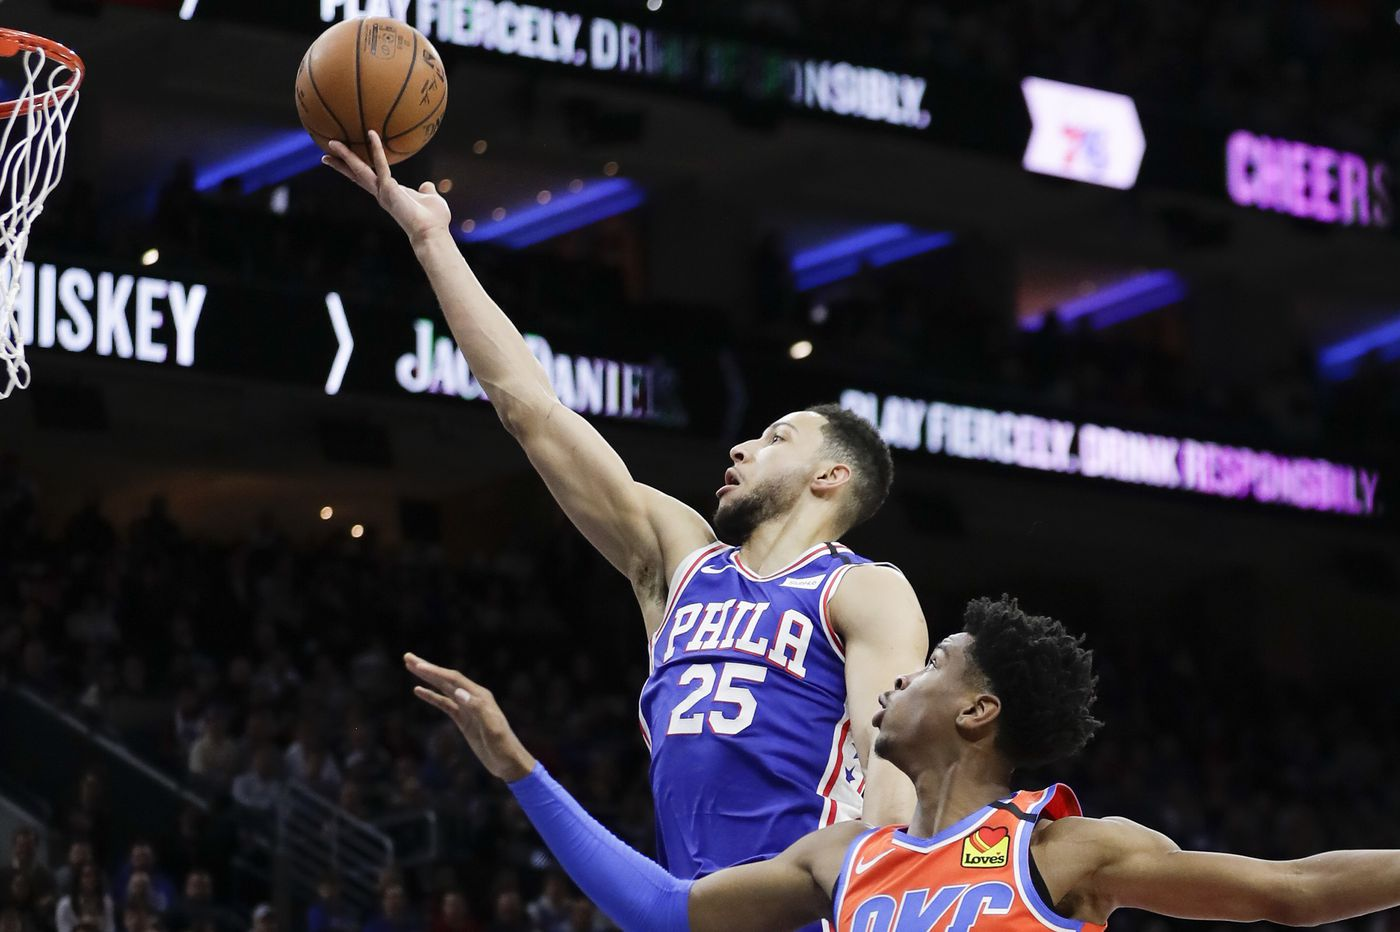 Ben Simmons was the Sixers' catalyst on both ends of the court in win over OKC